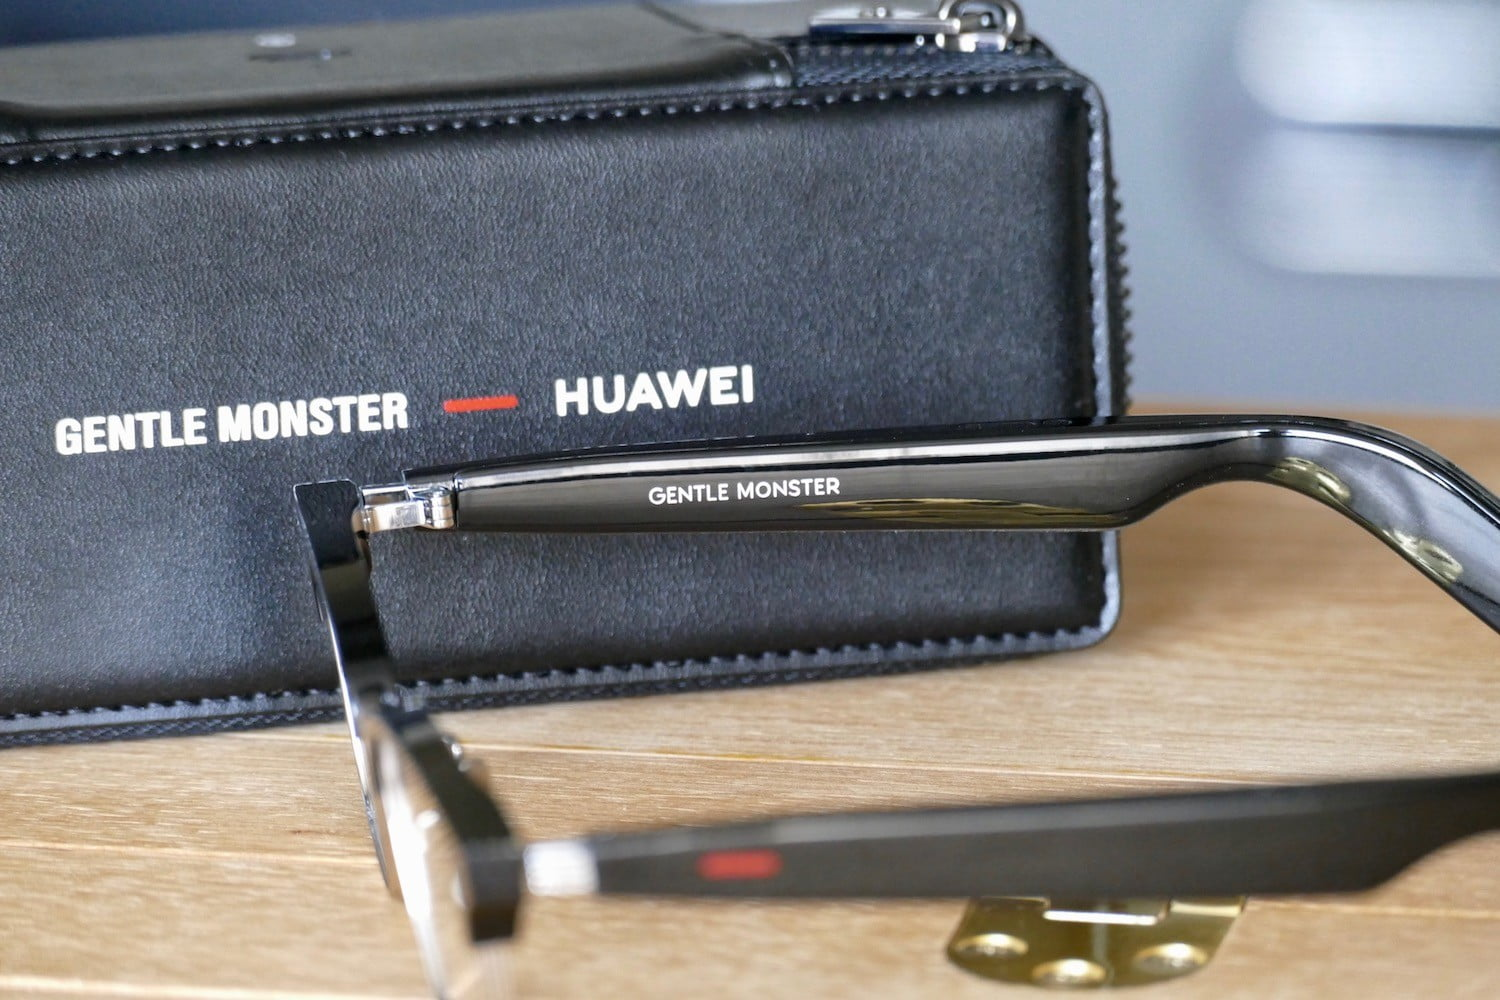 huawei gentle monster eyewear 2 hands on features price photos release date inside arm